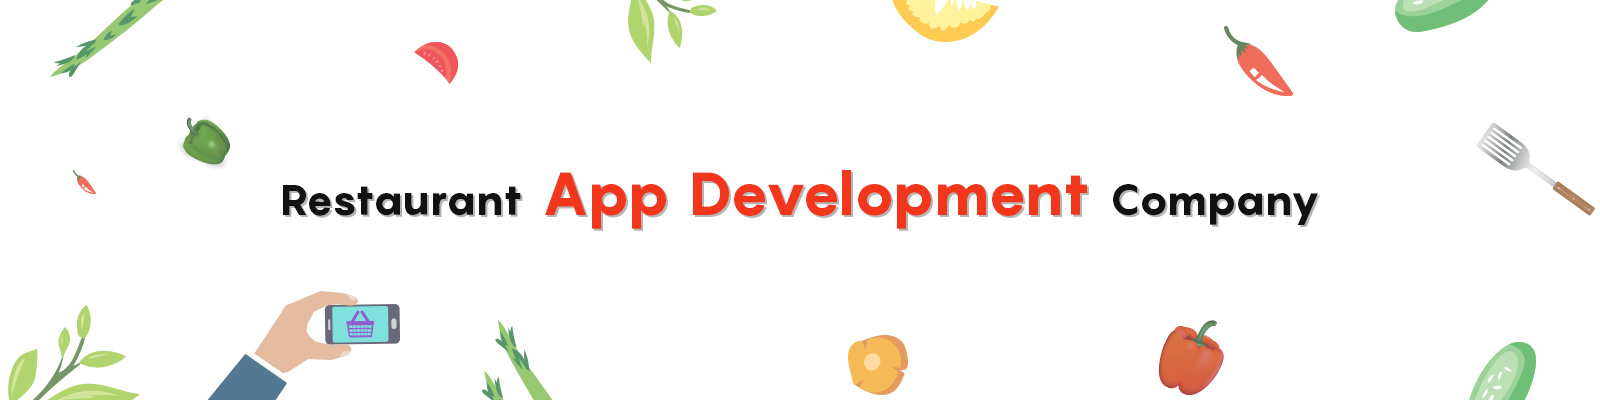 restaurant-app-development-company